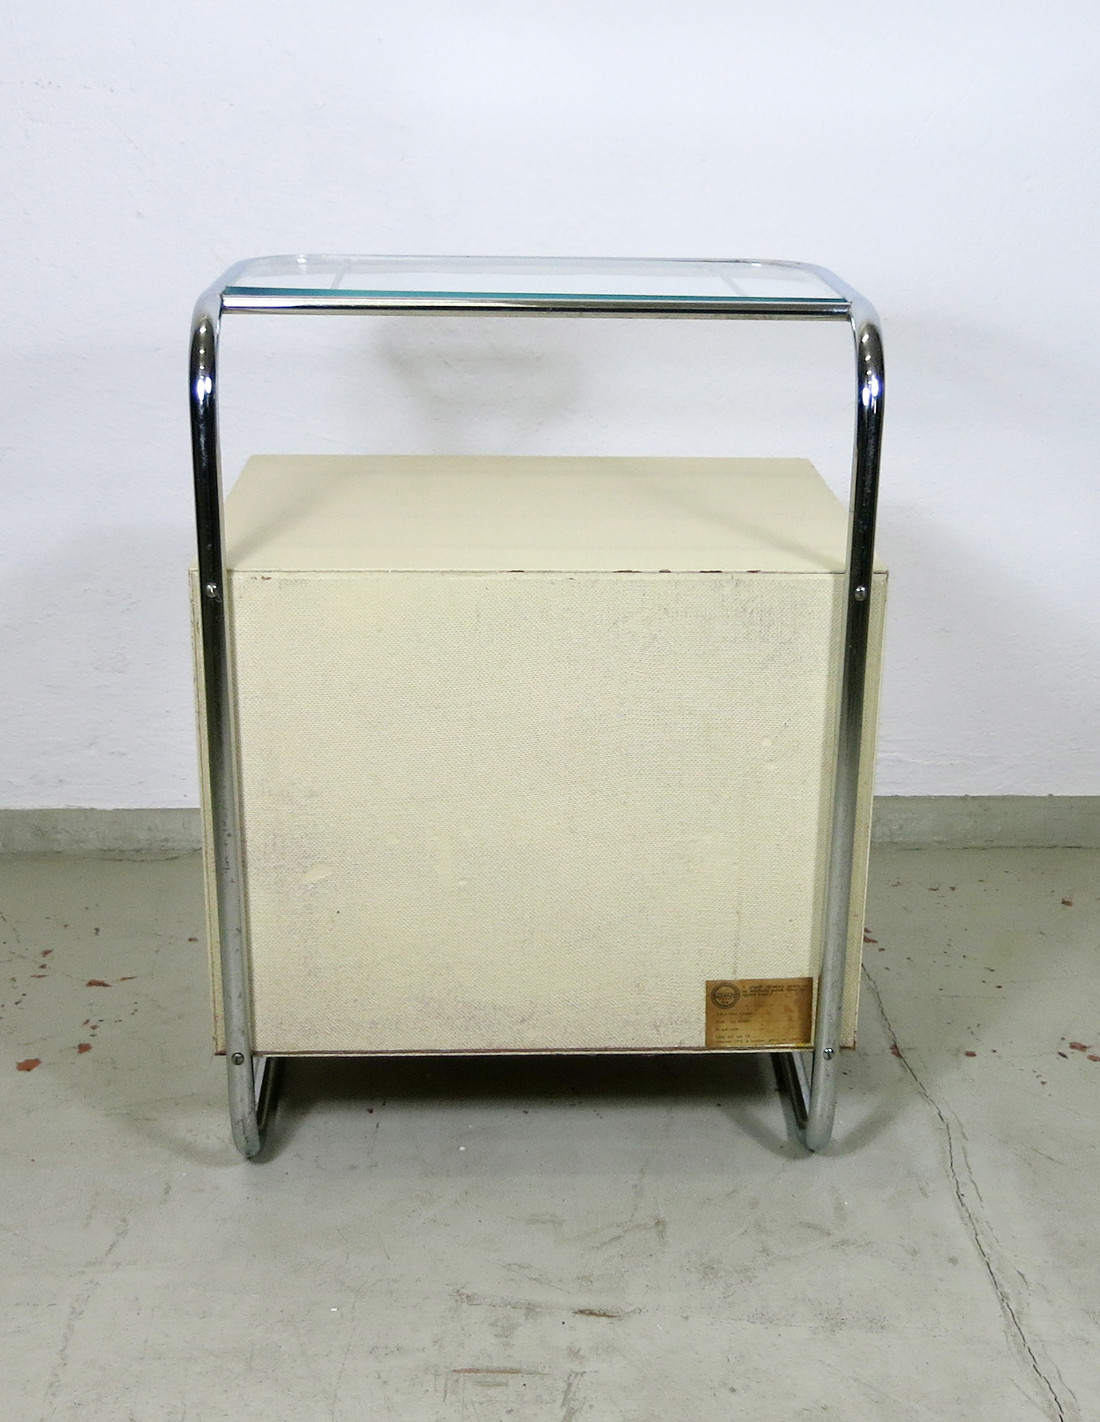 Bedside table with tubular steel frame and glass top by Kovona